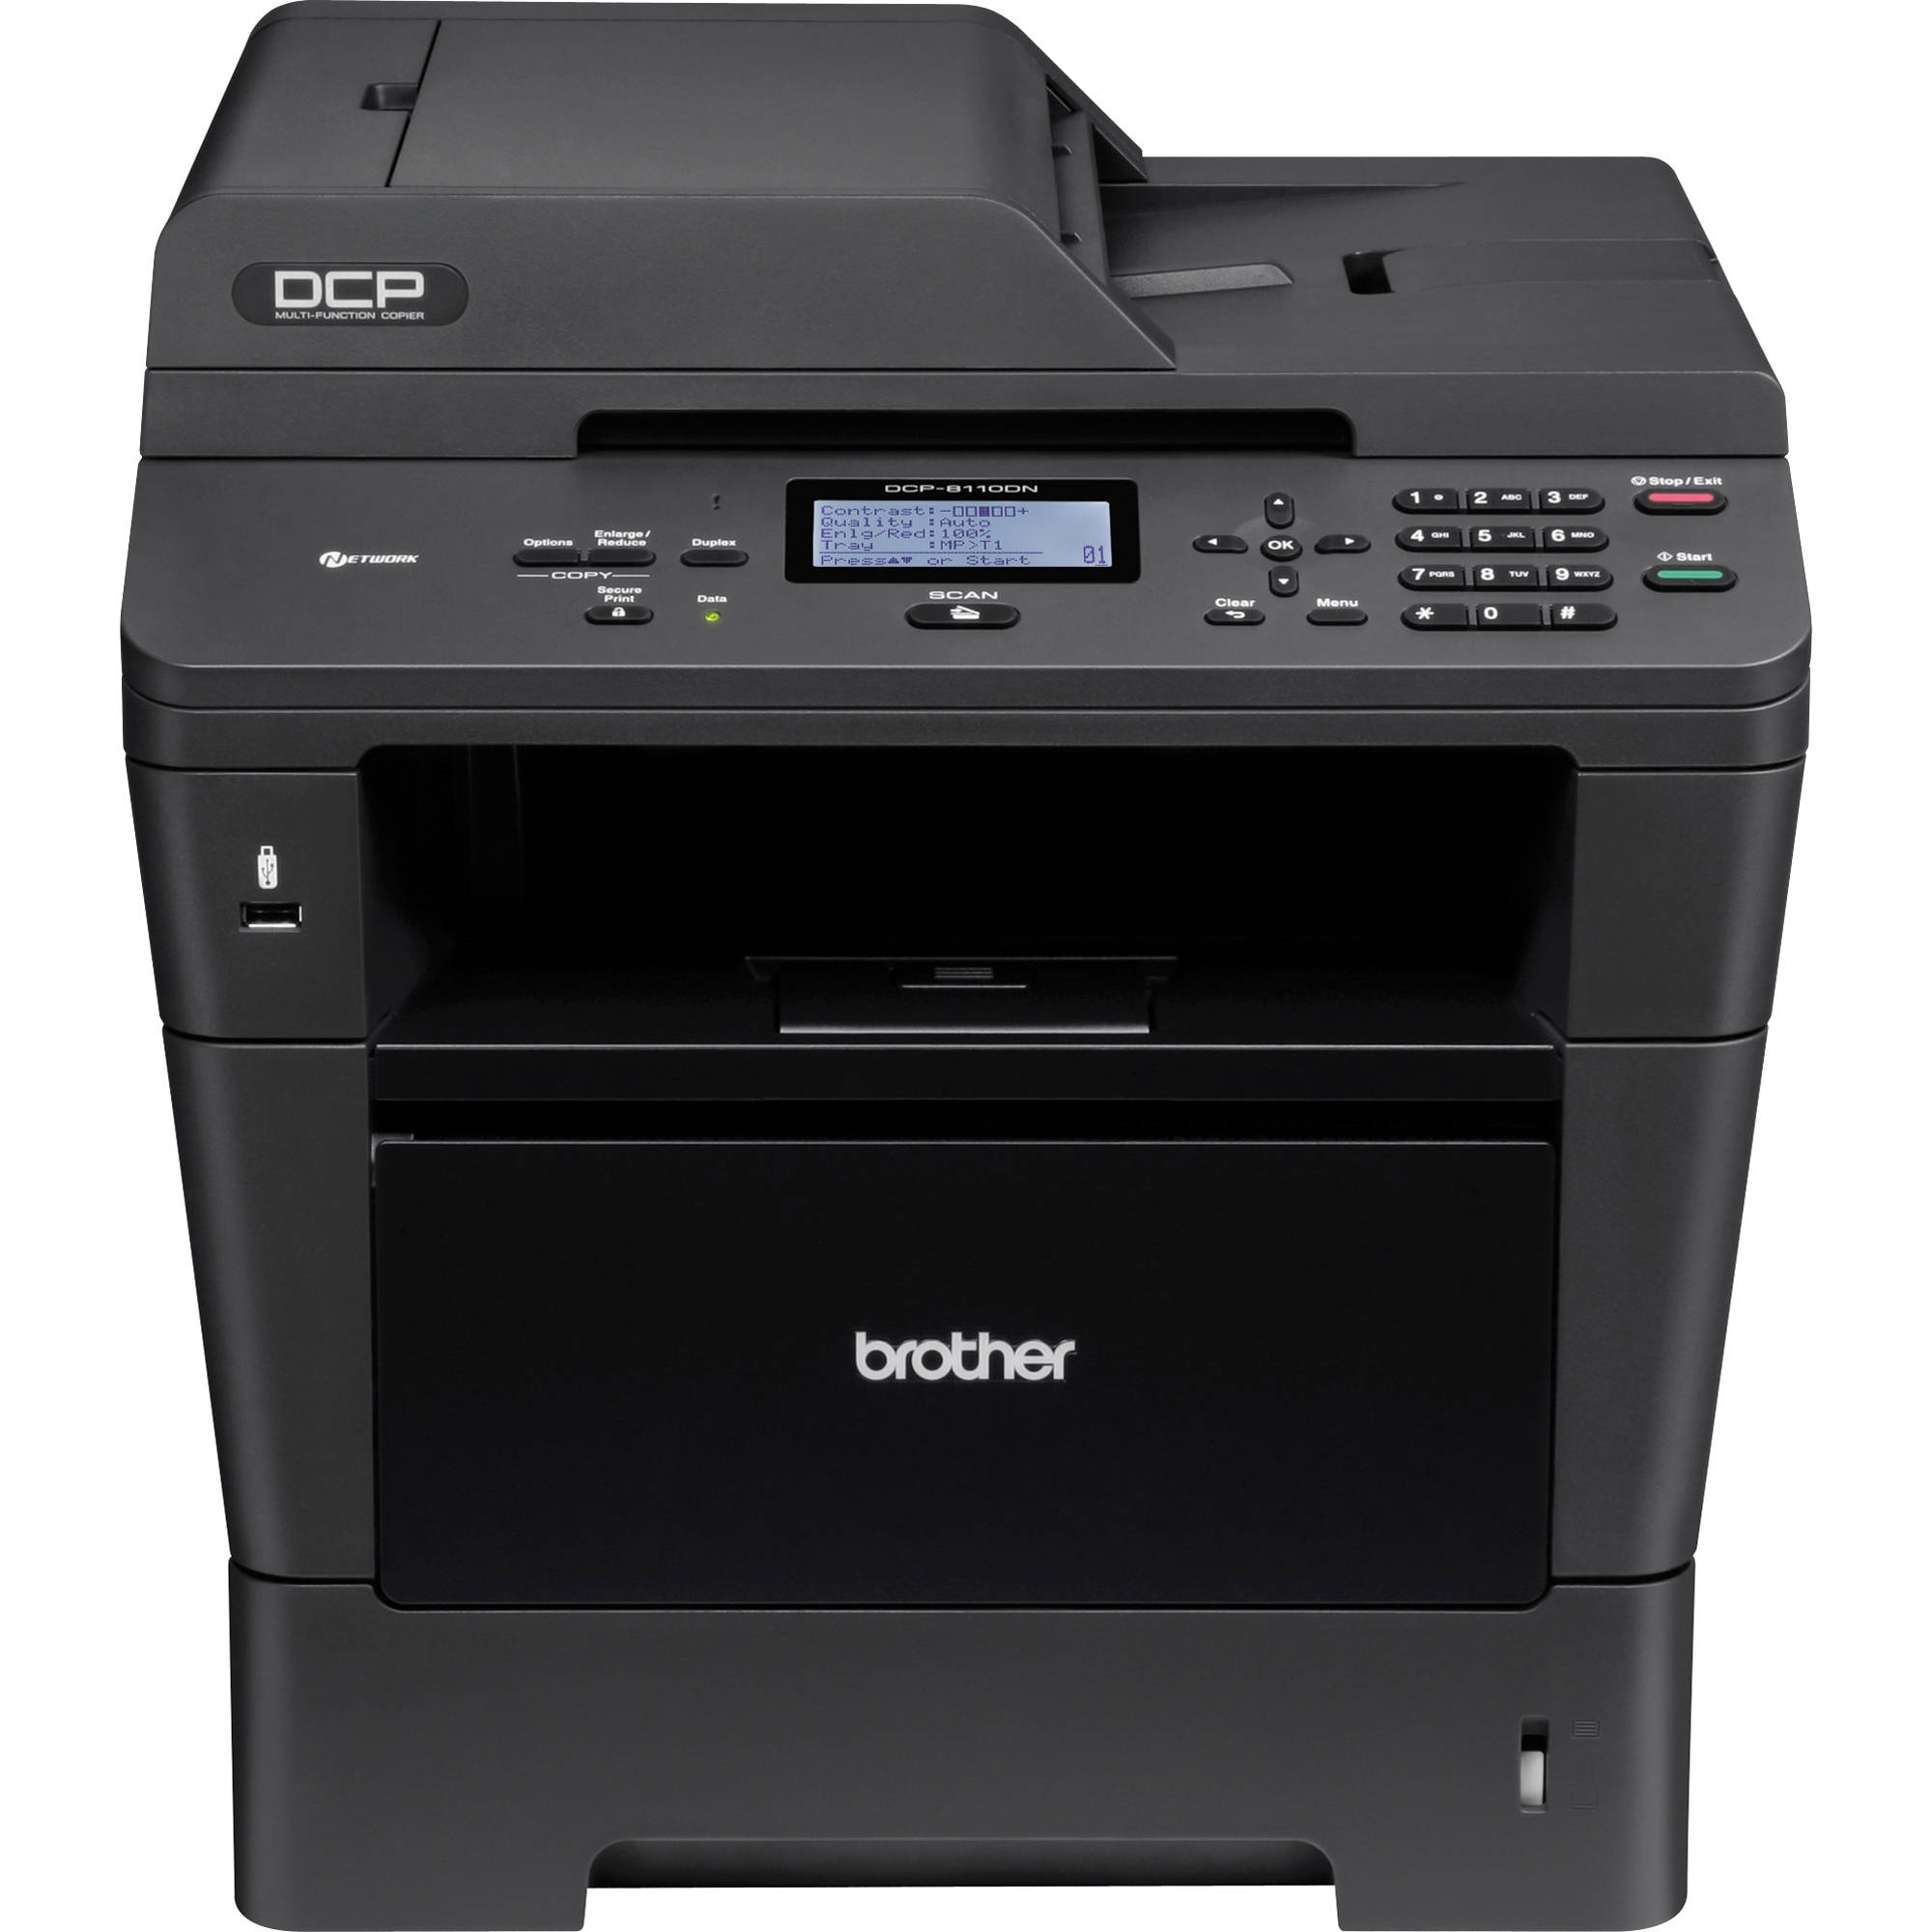 Brother DCP-163C XML Paper Specification Printer Drivers PC